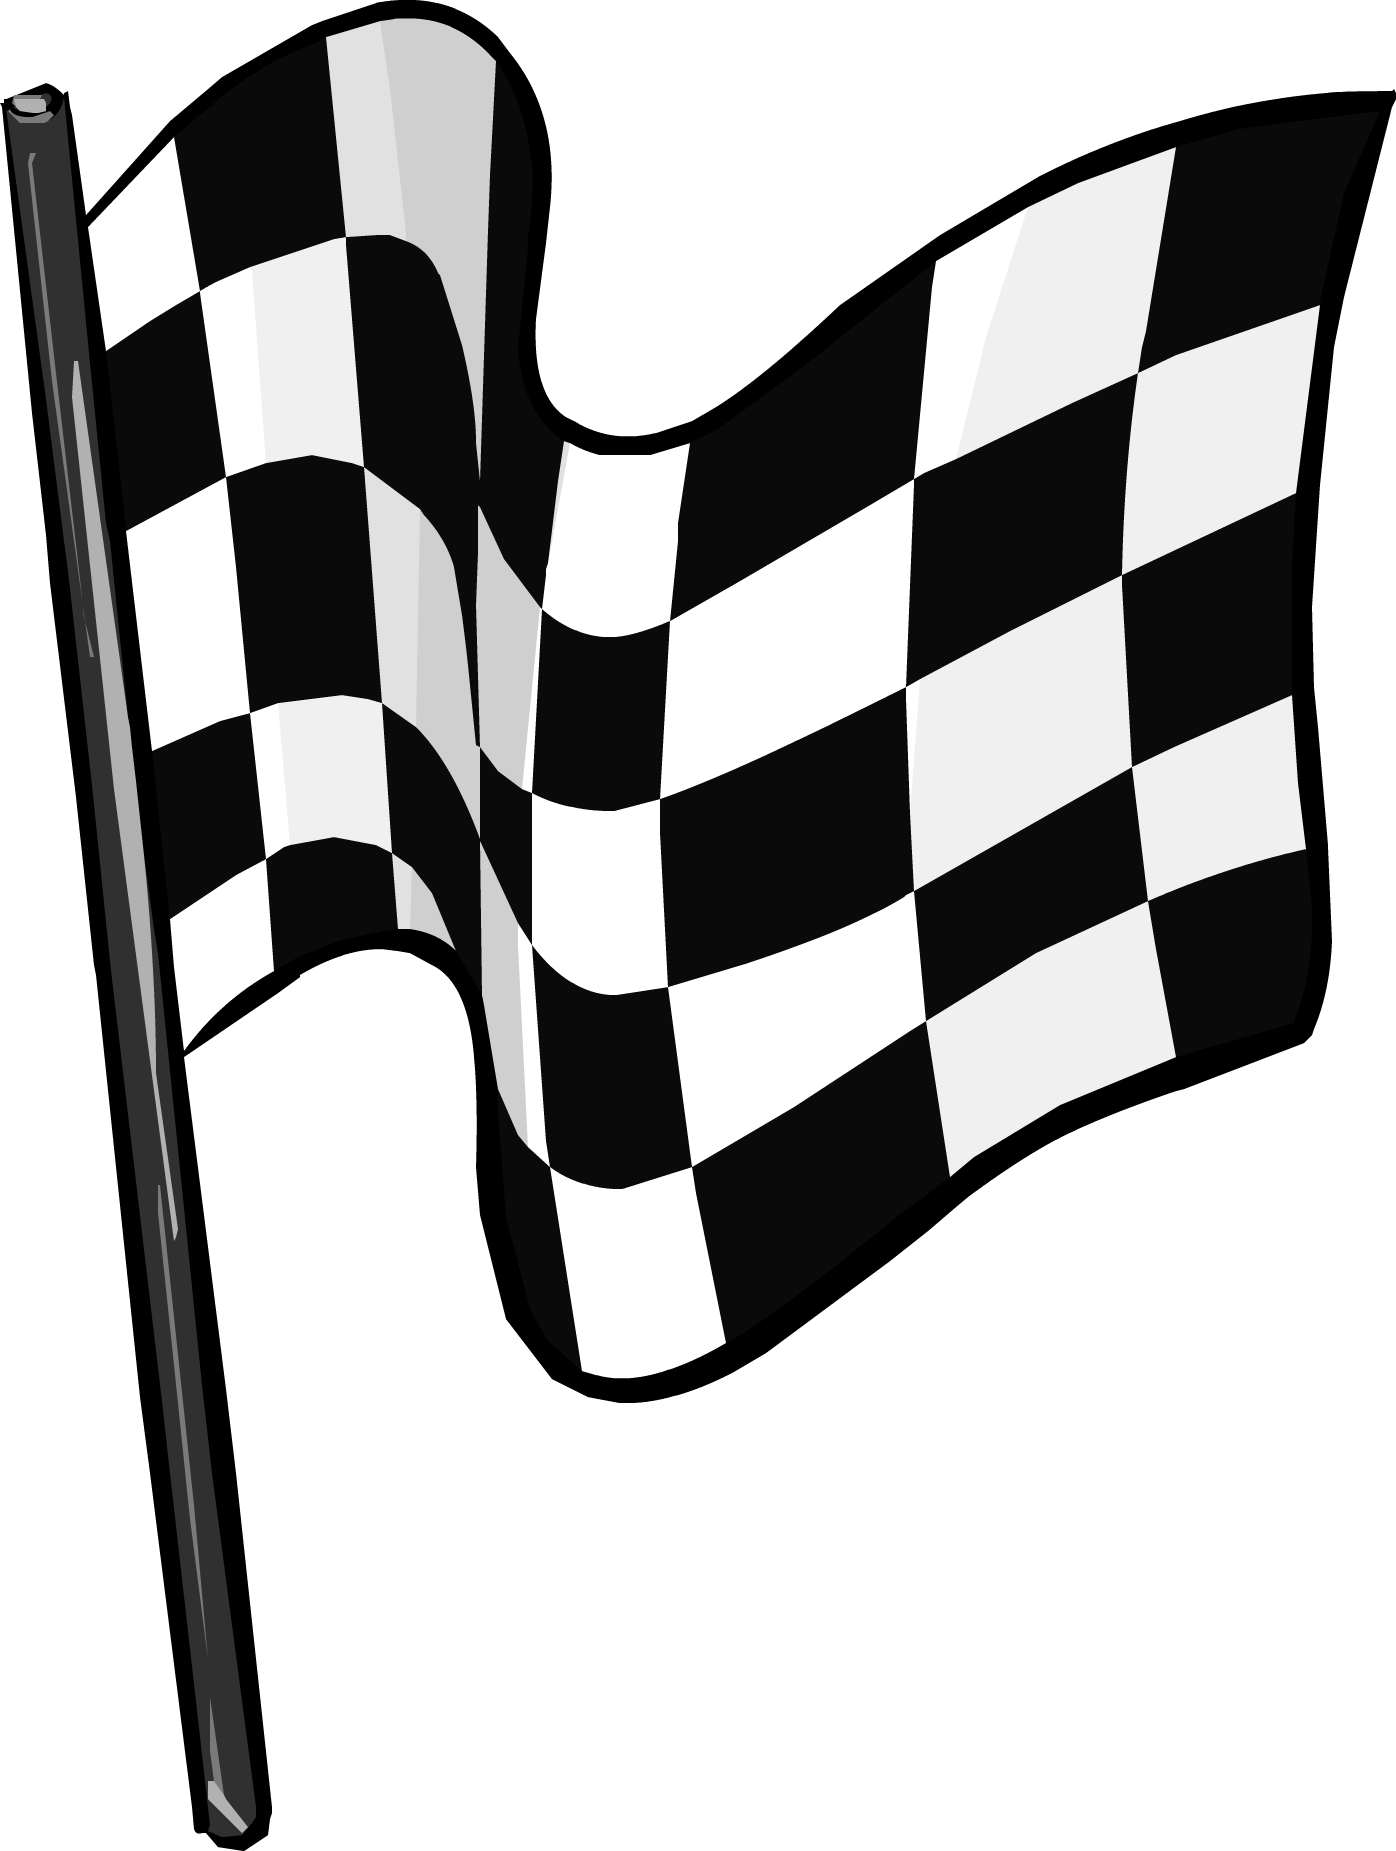 Checkered flag png. Image clothing icon id